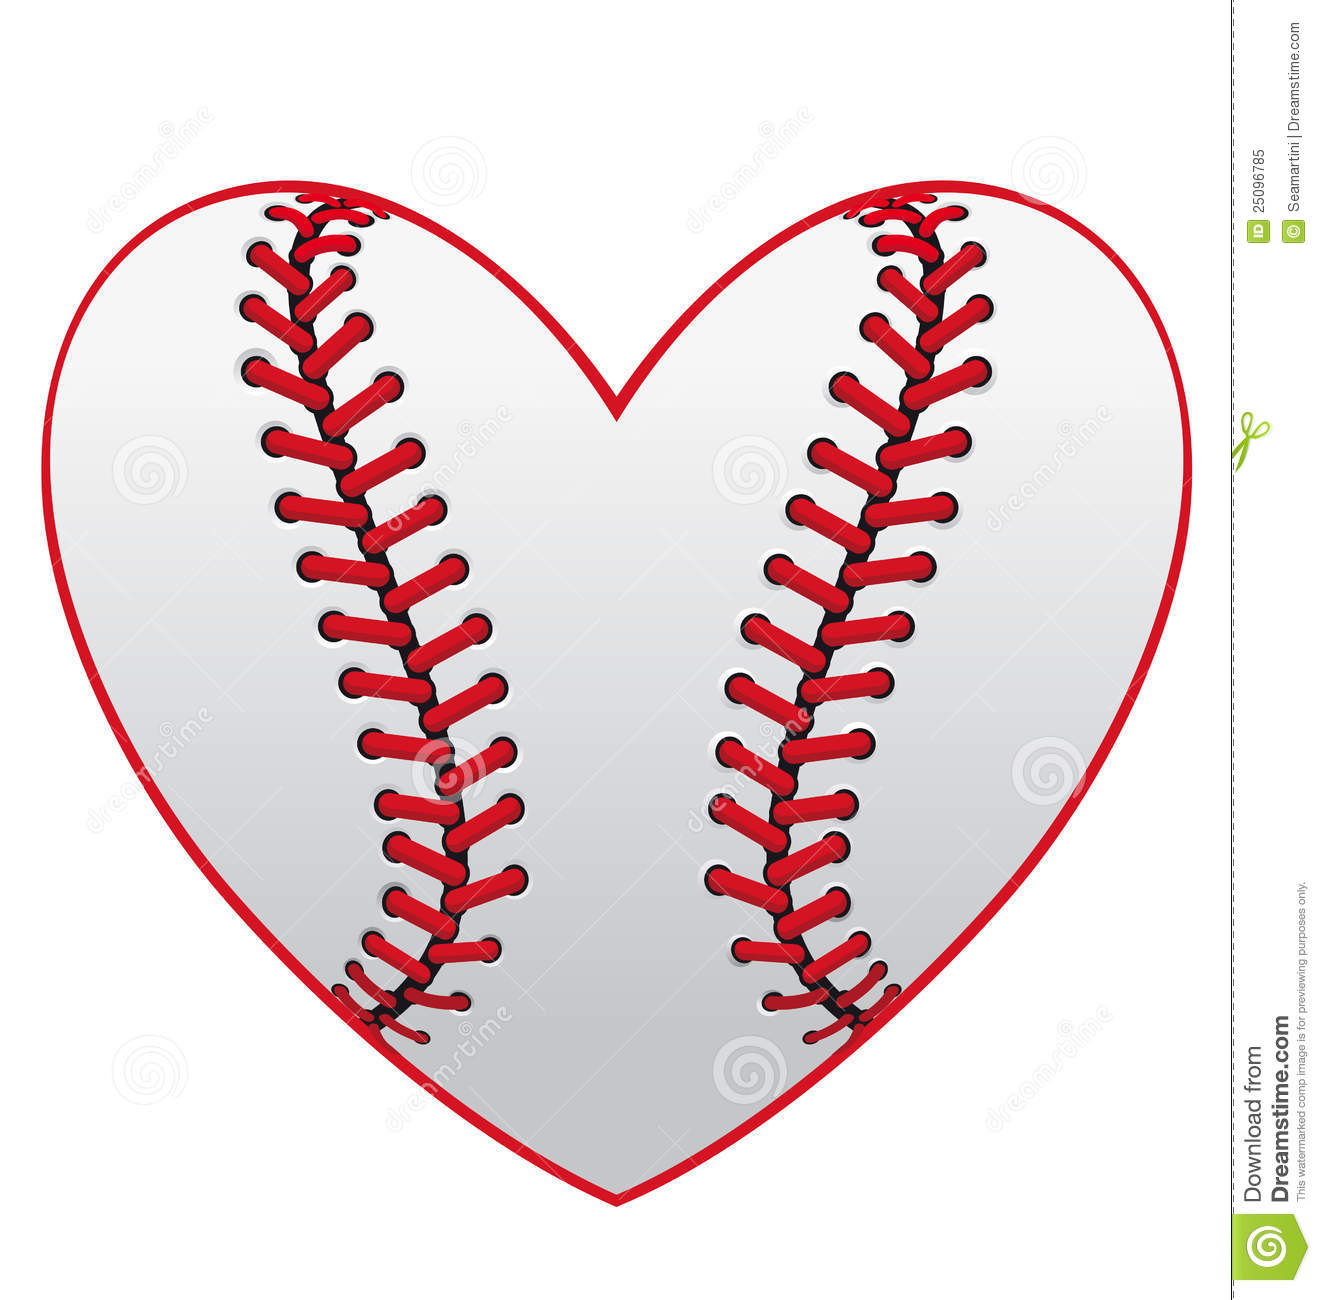 11 Baseball Heart Vector Images